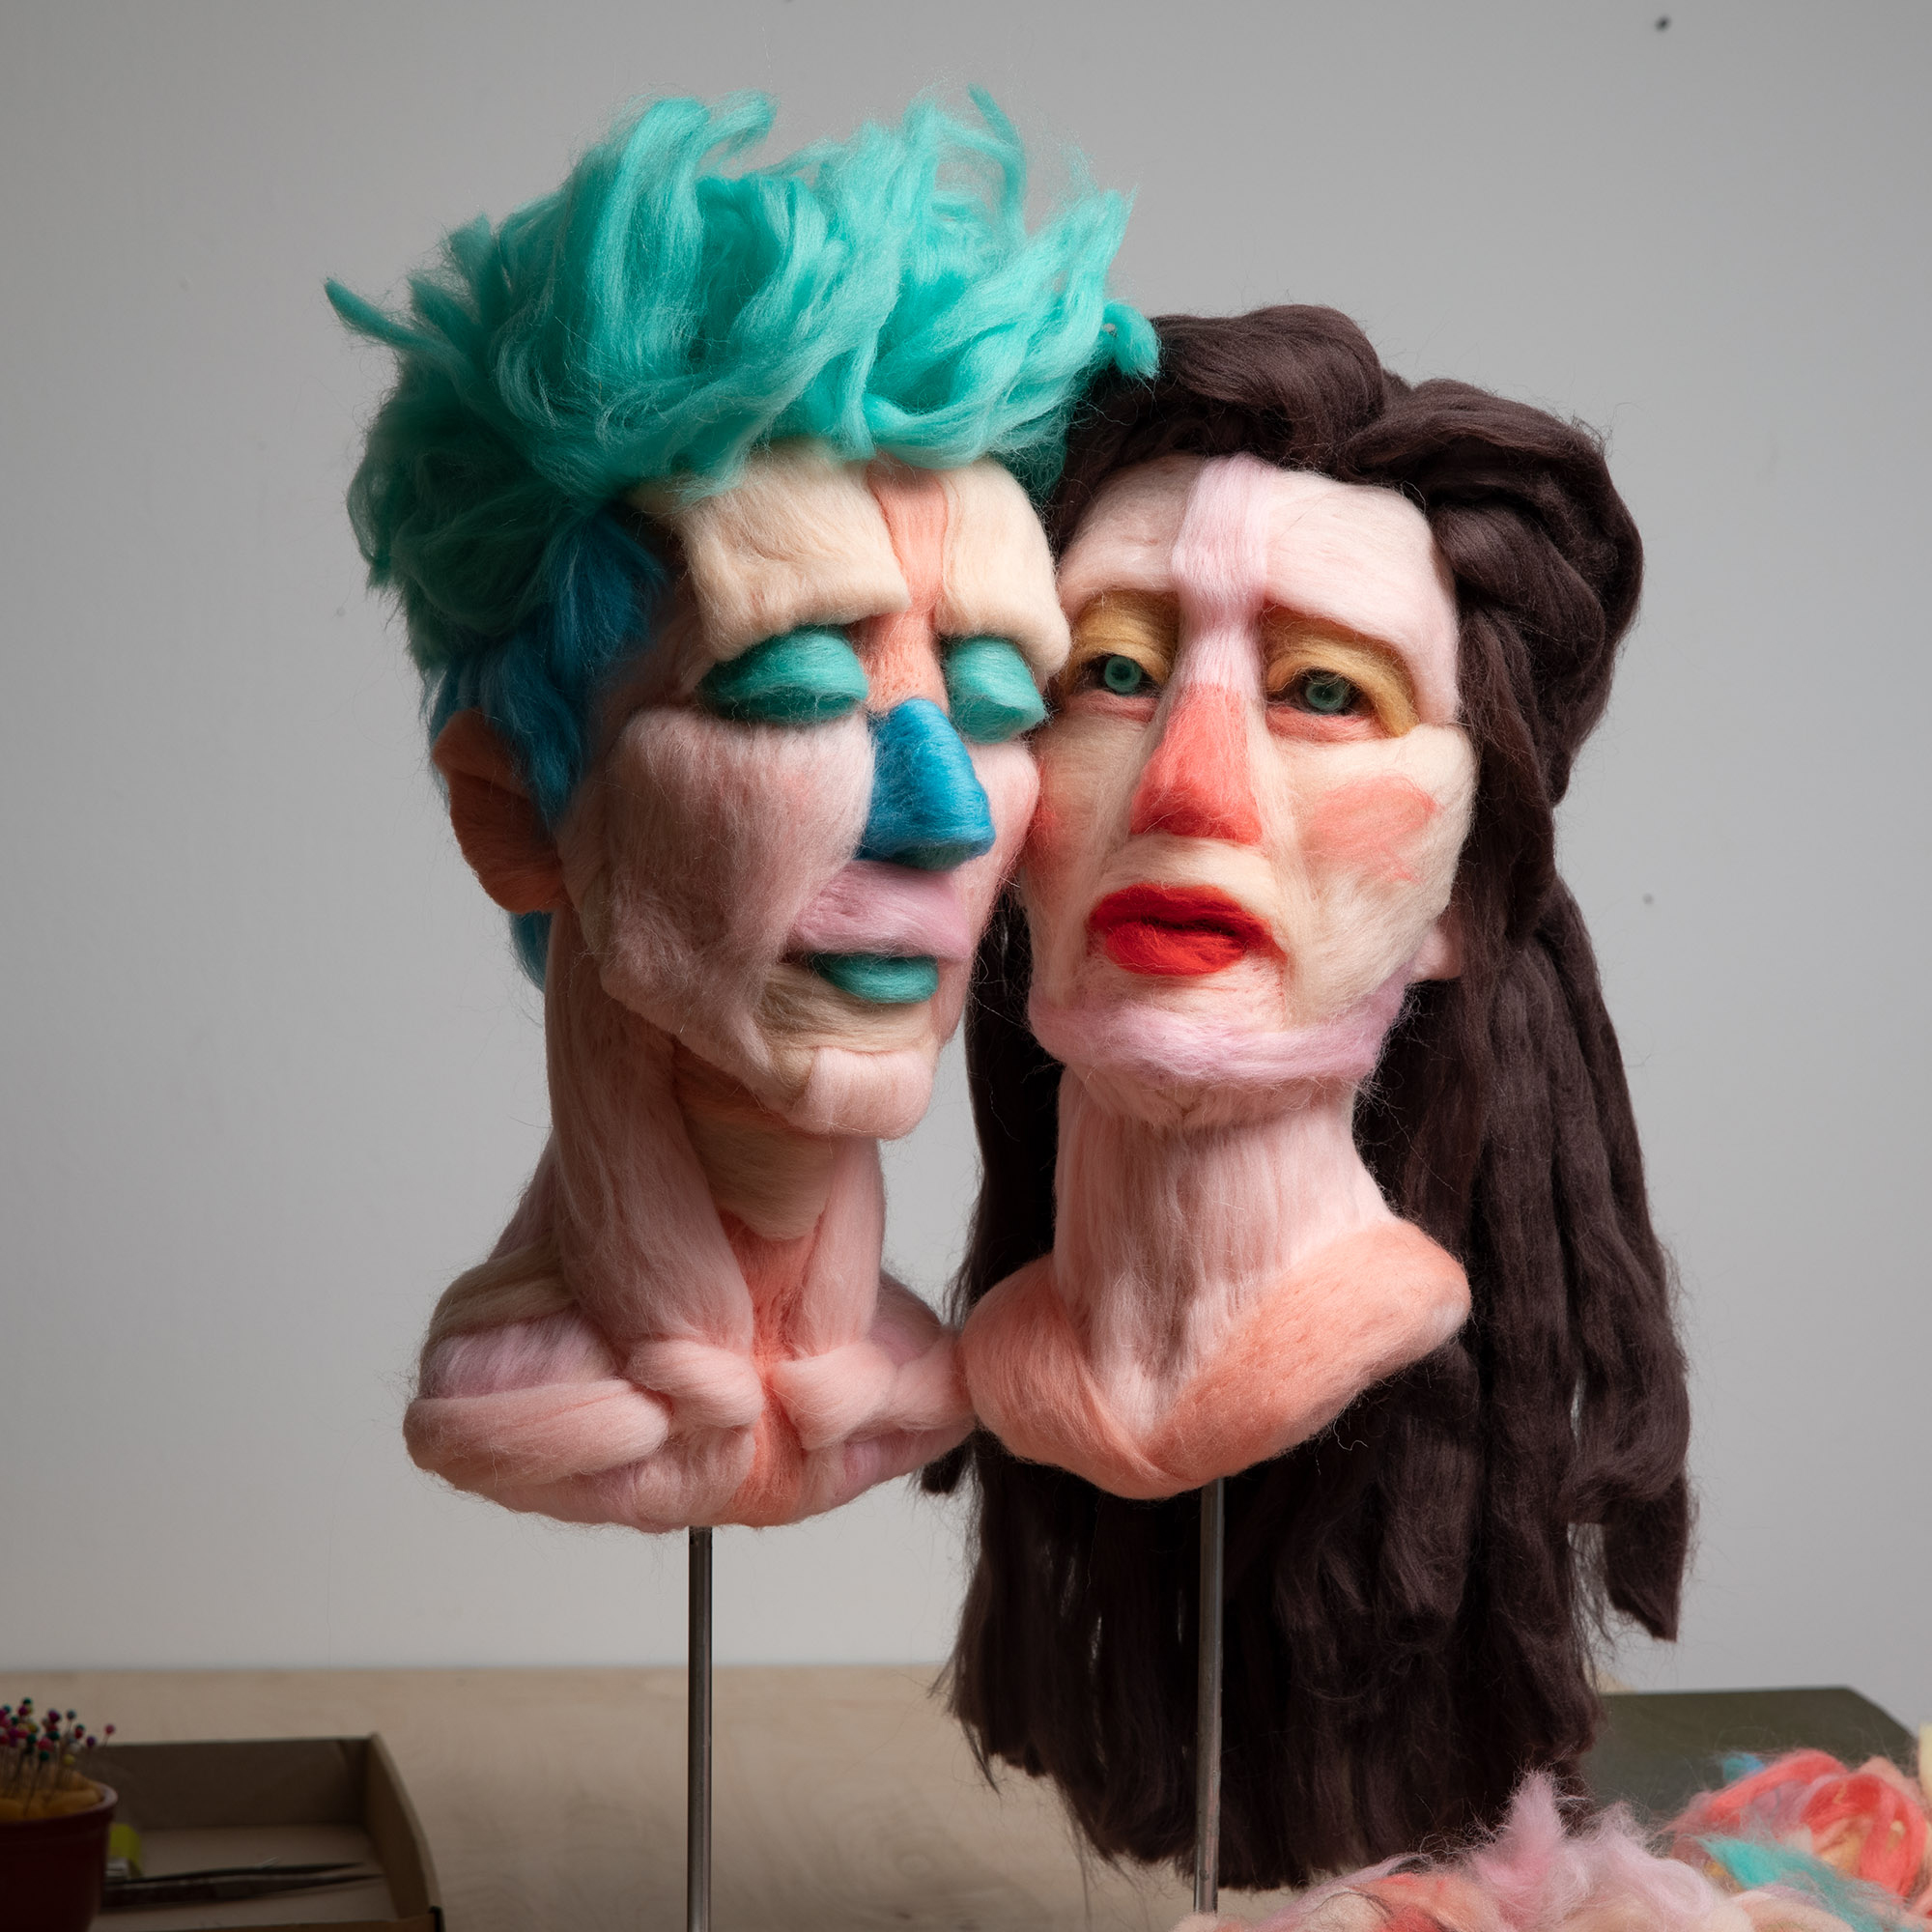 Colorful Raw Wool Is Twisted into Expressive Busts by Salman Khoshroo